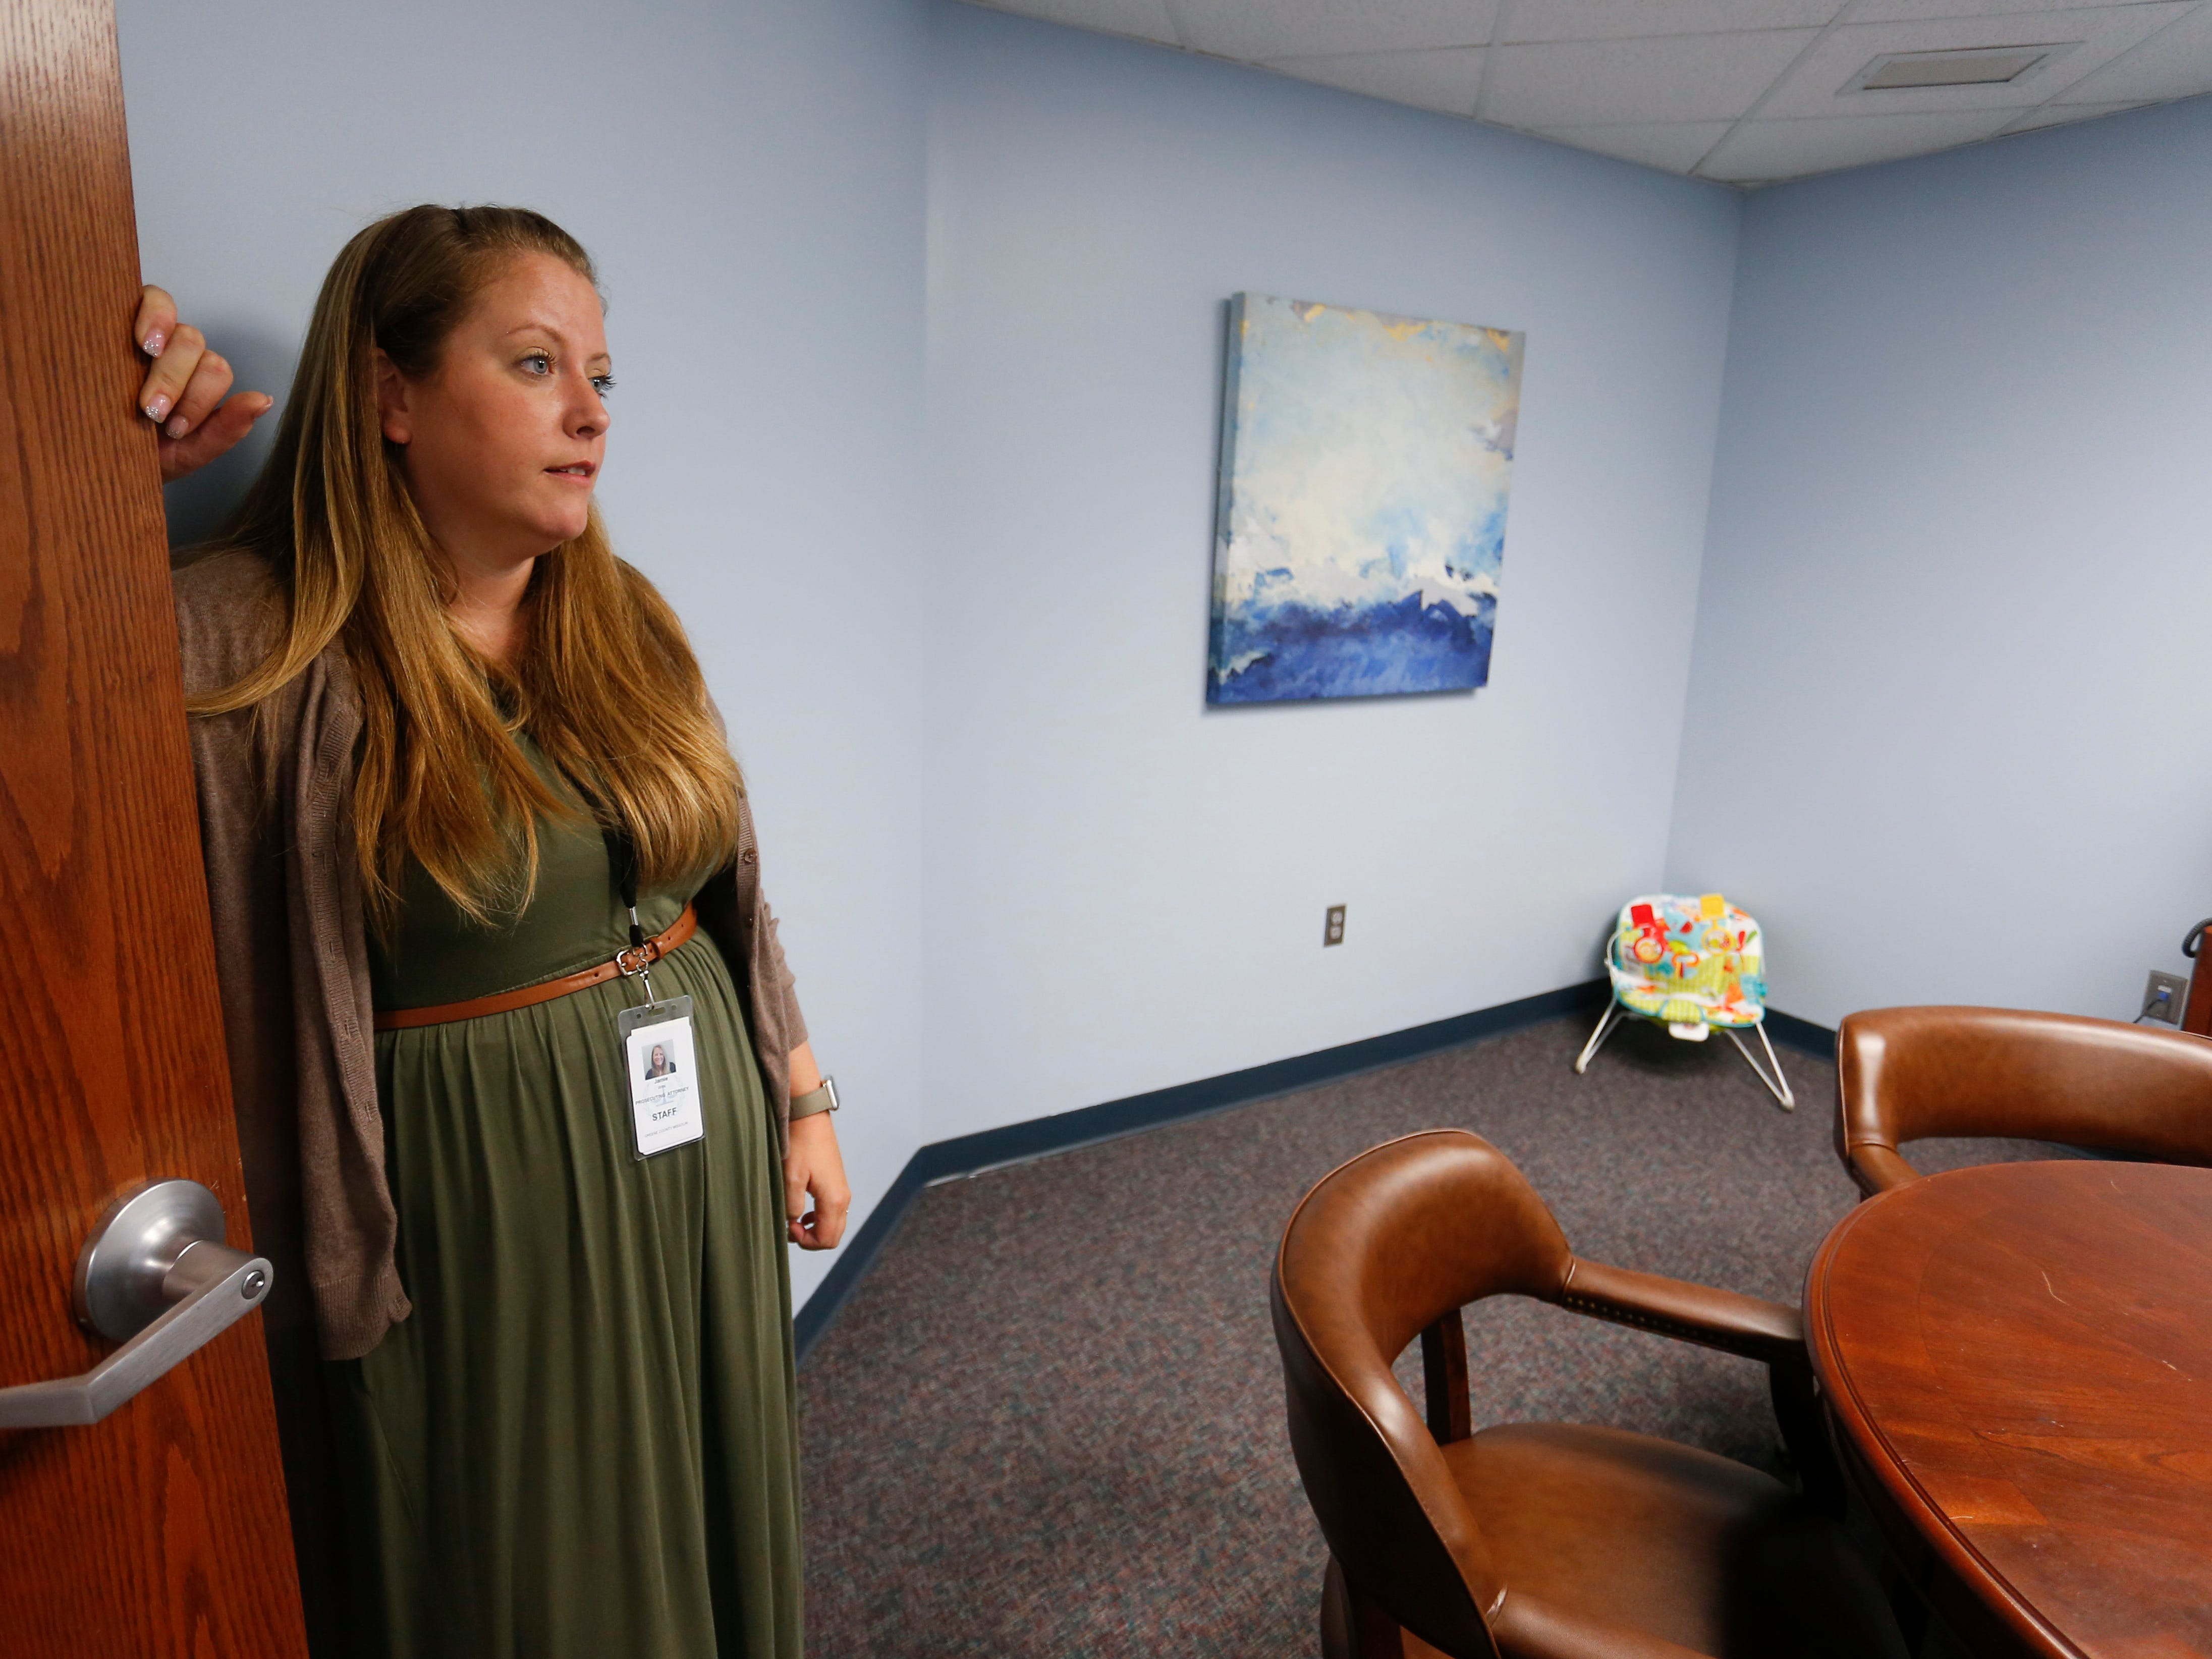 Jamie Willis, the Family Justice Center project coordinator, leads a tour of the Family Justice Center located on the second floor of the Greene County Courthouse on Thursday, Aug. 30, 2018.